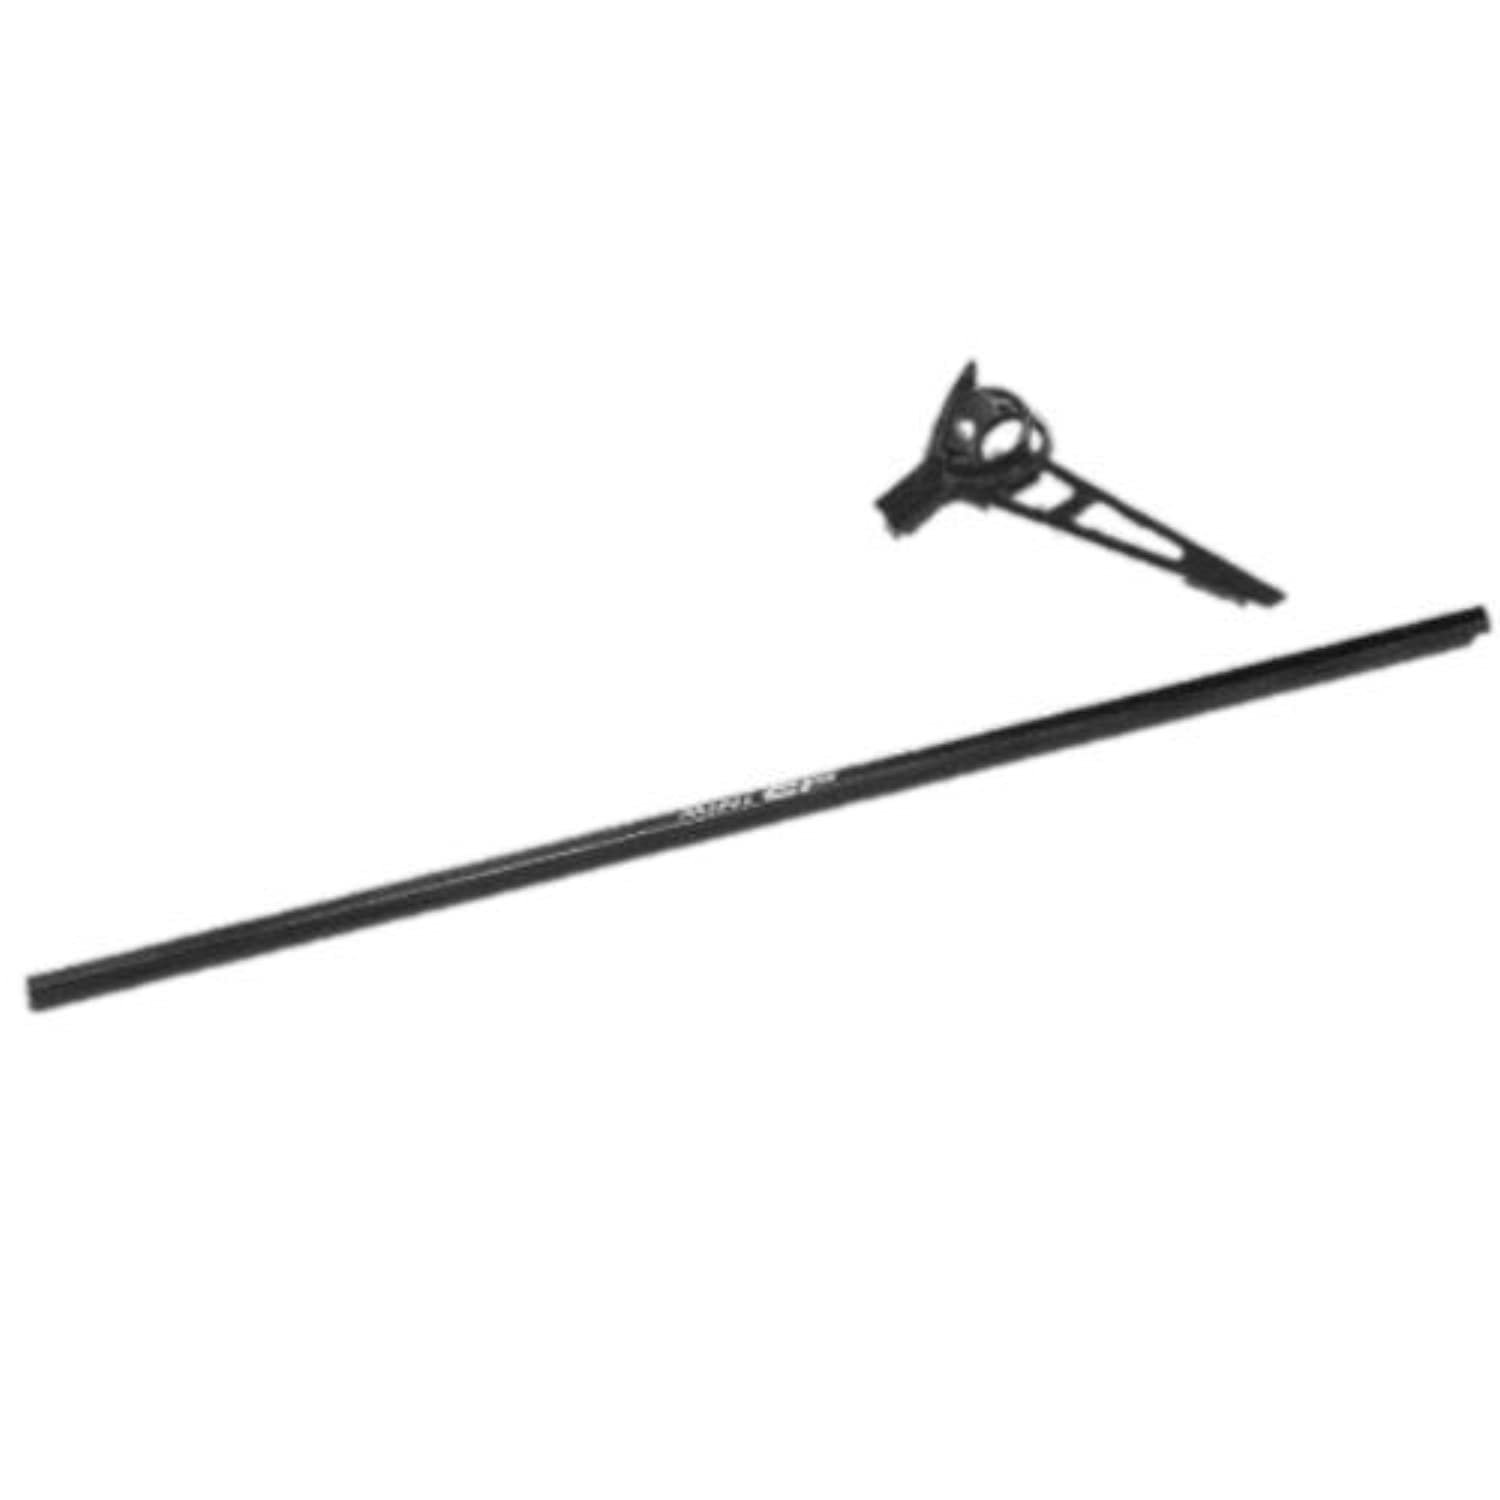 Dimart Walkera HM-Mini CP-Z-12 Tail Boom Parts for Mini CP Super FP Helicopter by Dimart [並行輸入品]